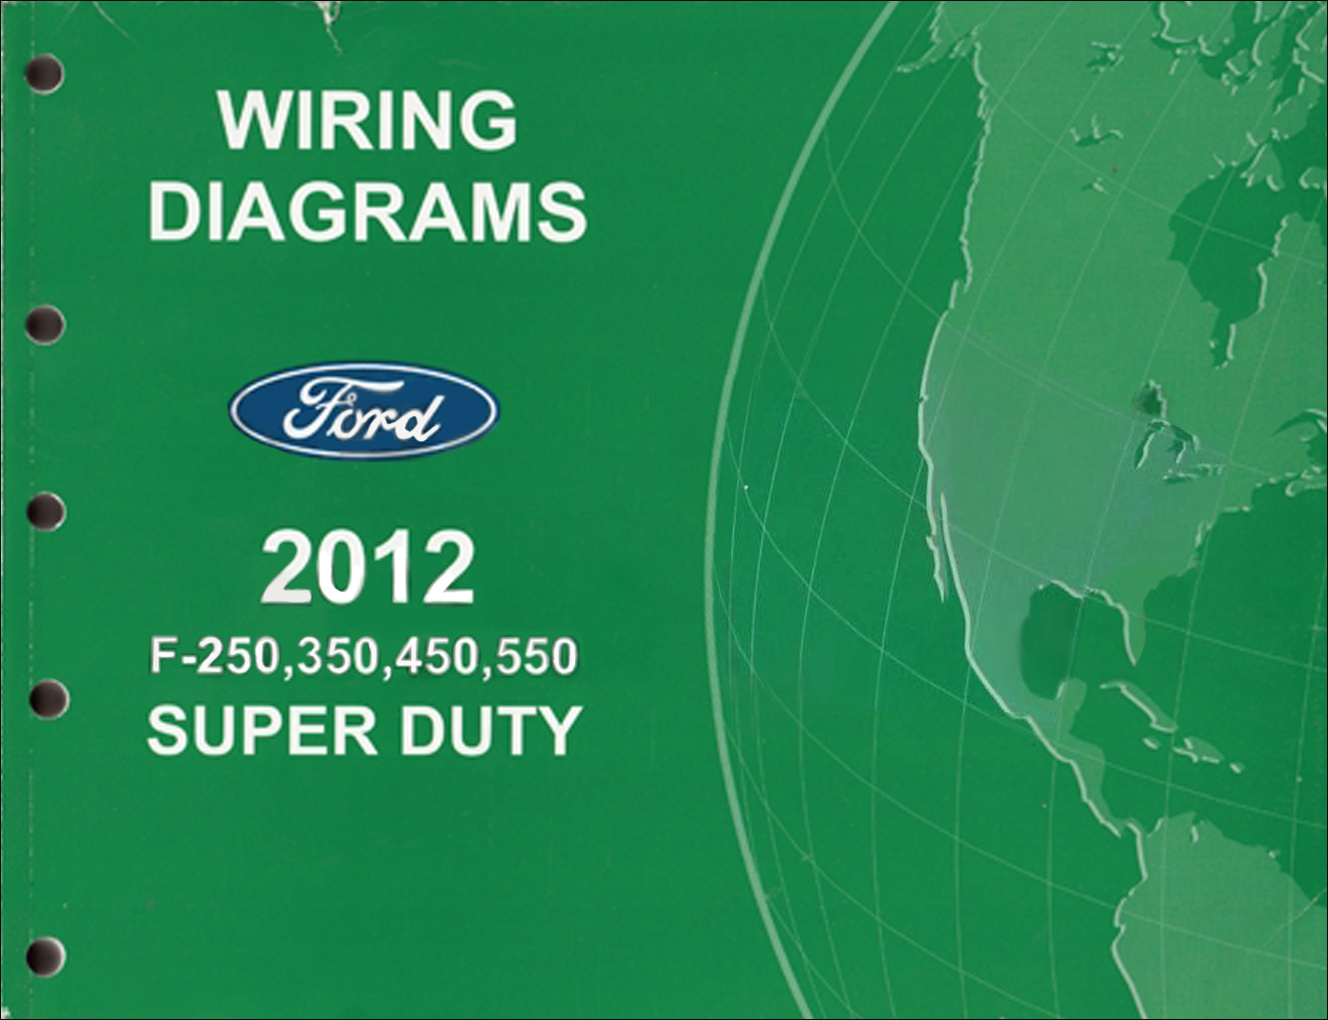 2012 Ford F-250 thru 550 Super Duty Wiring Diagram Manual Original | Ford F250 Wiring Diagram |  | Faxon Auto Literature